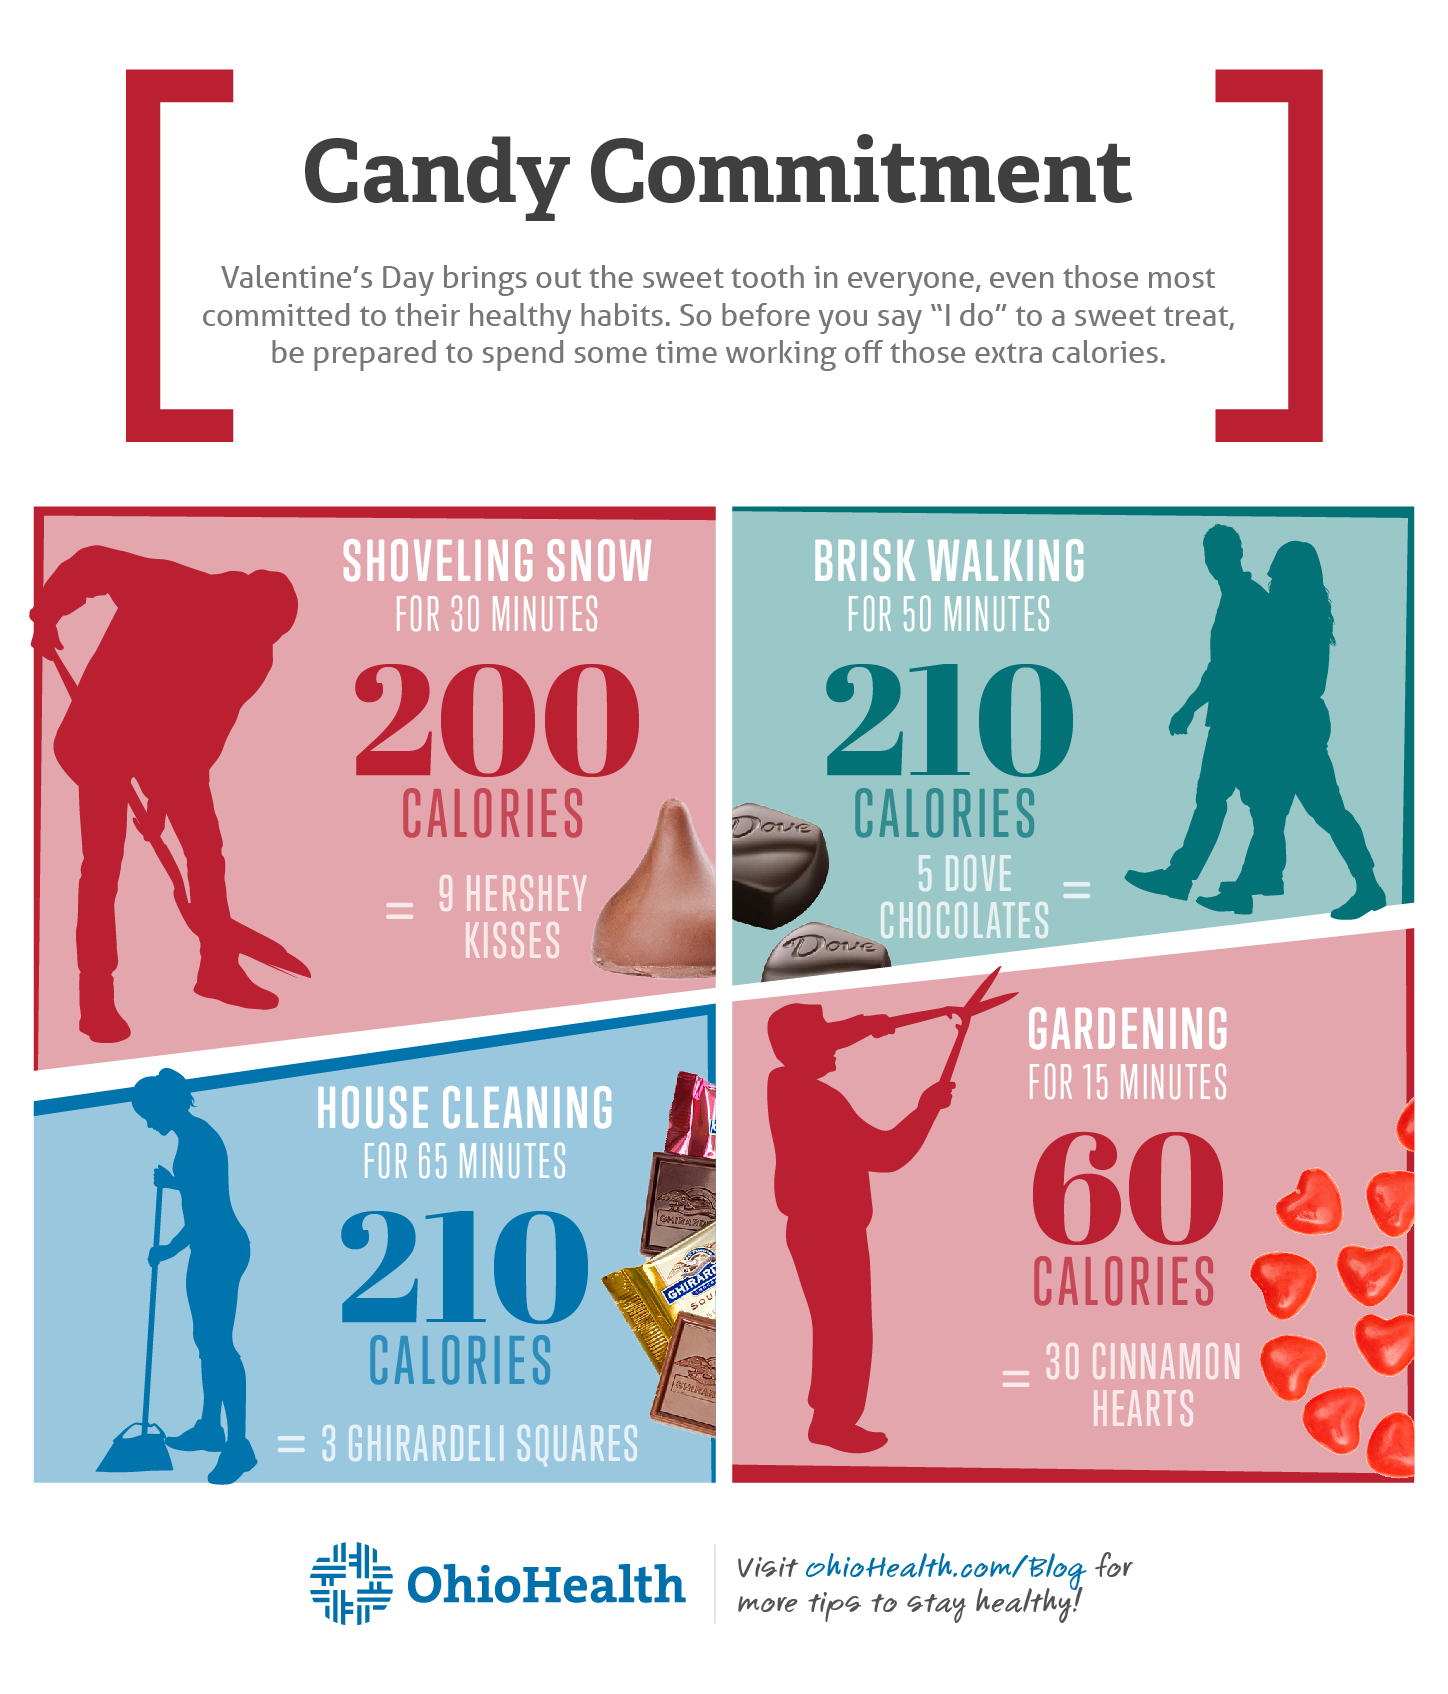 Infographic describing how many minutes of chores and tasks burn the amount of calories in specific candies